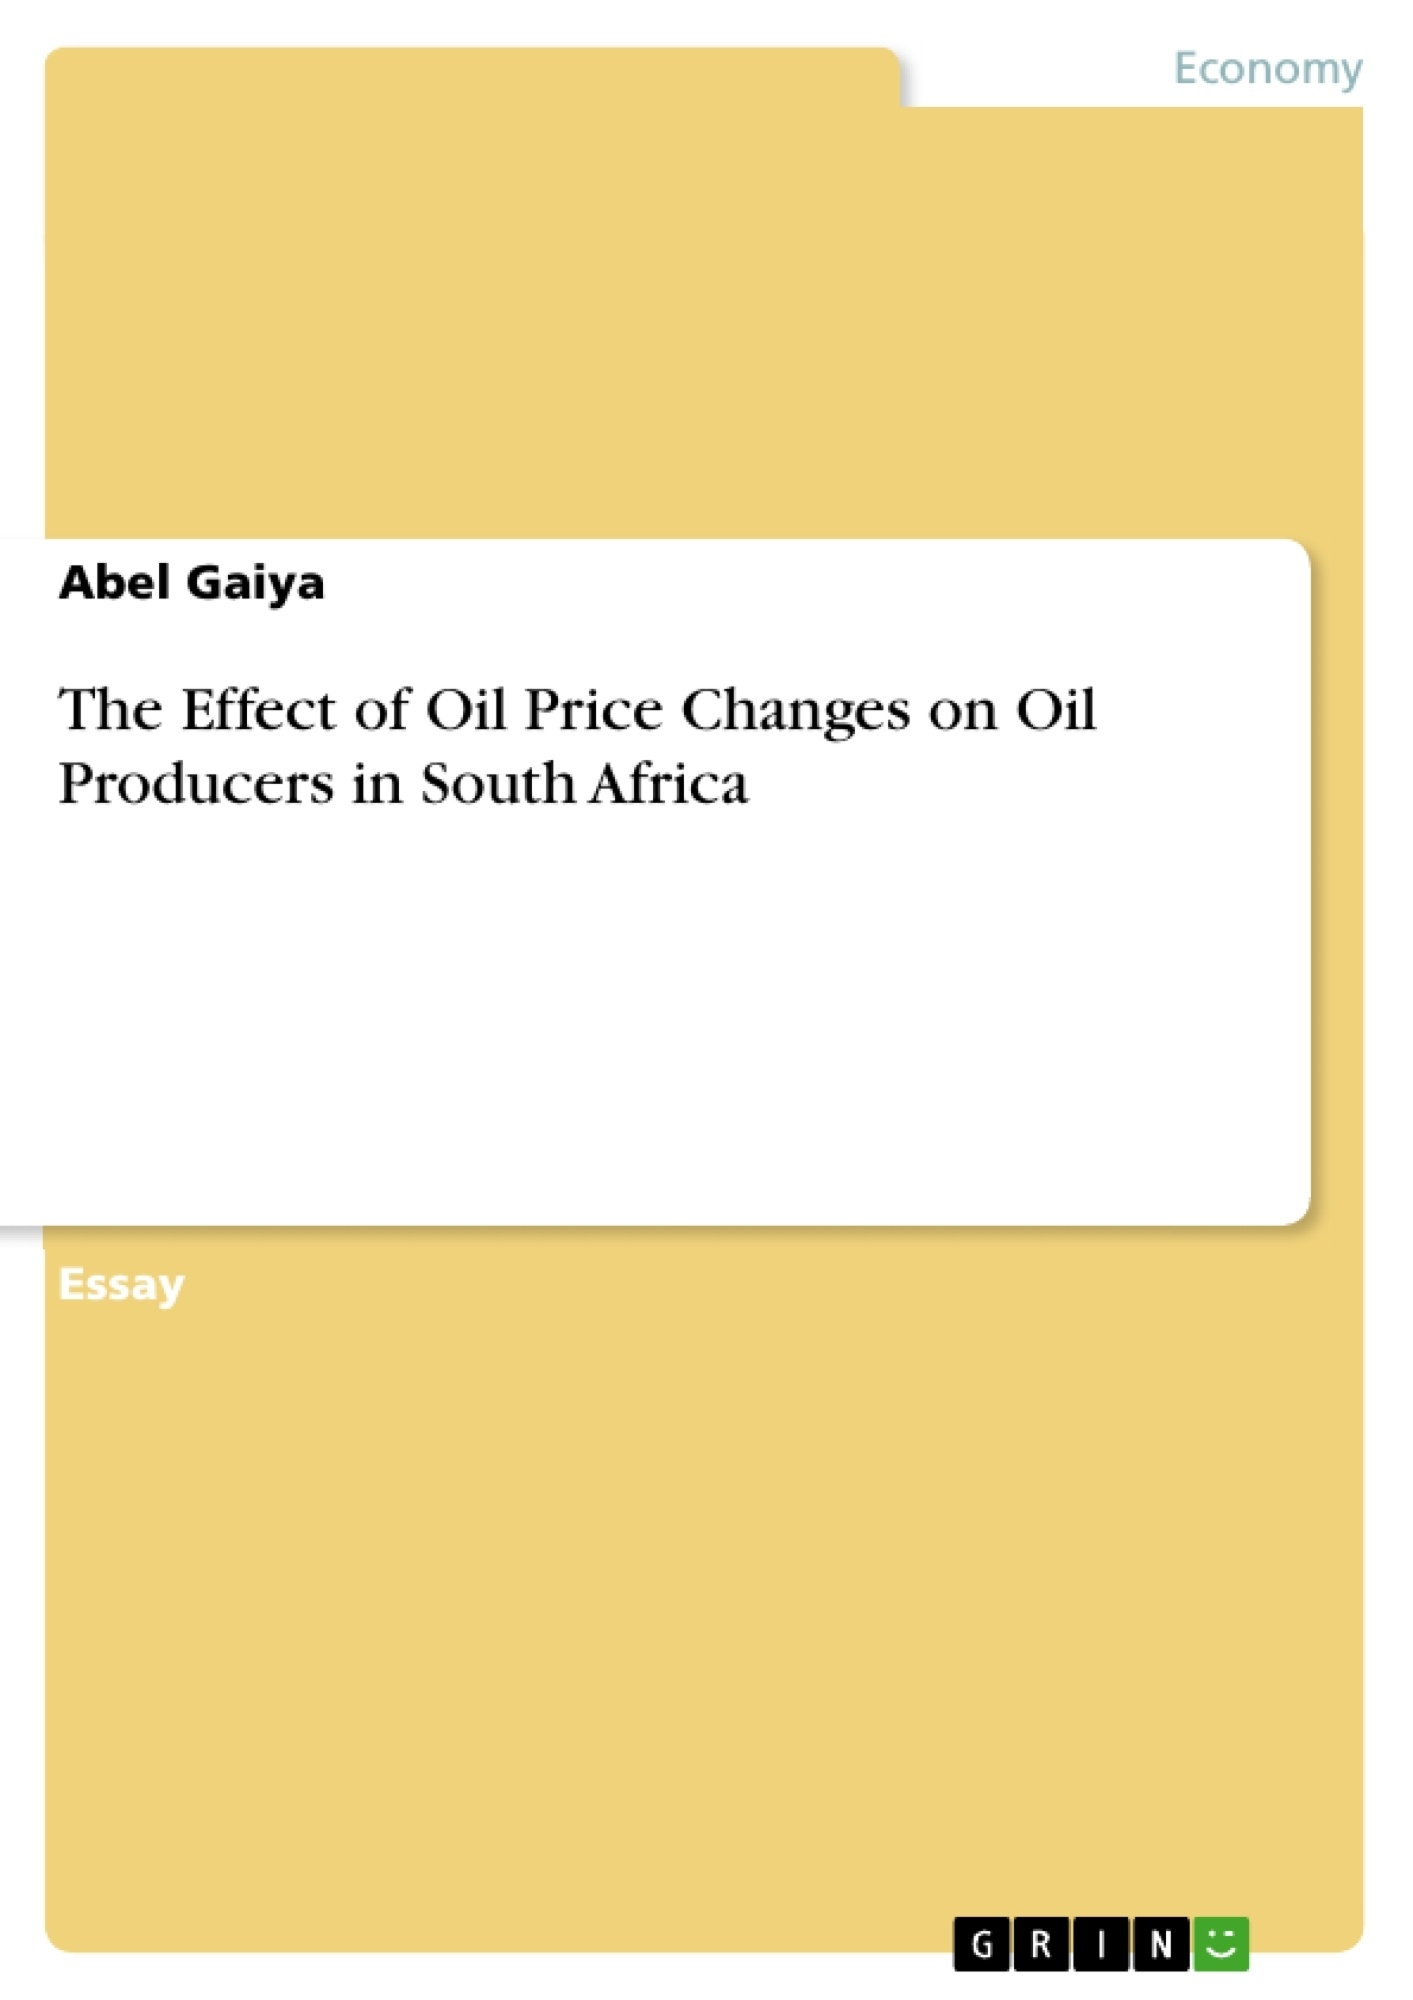 Title: The Effect of Oil Price Changes on Oil Producers in South Africa